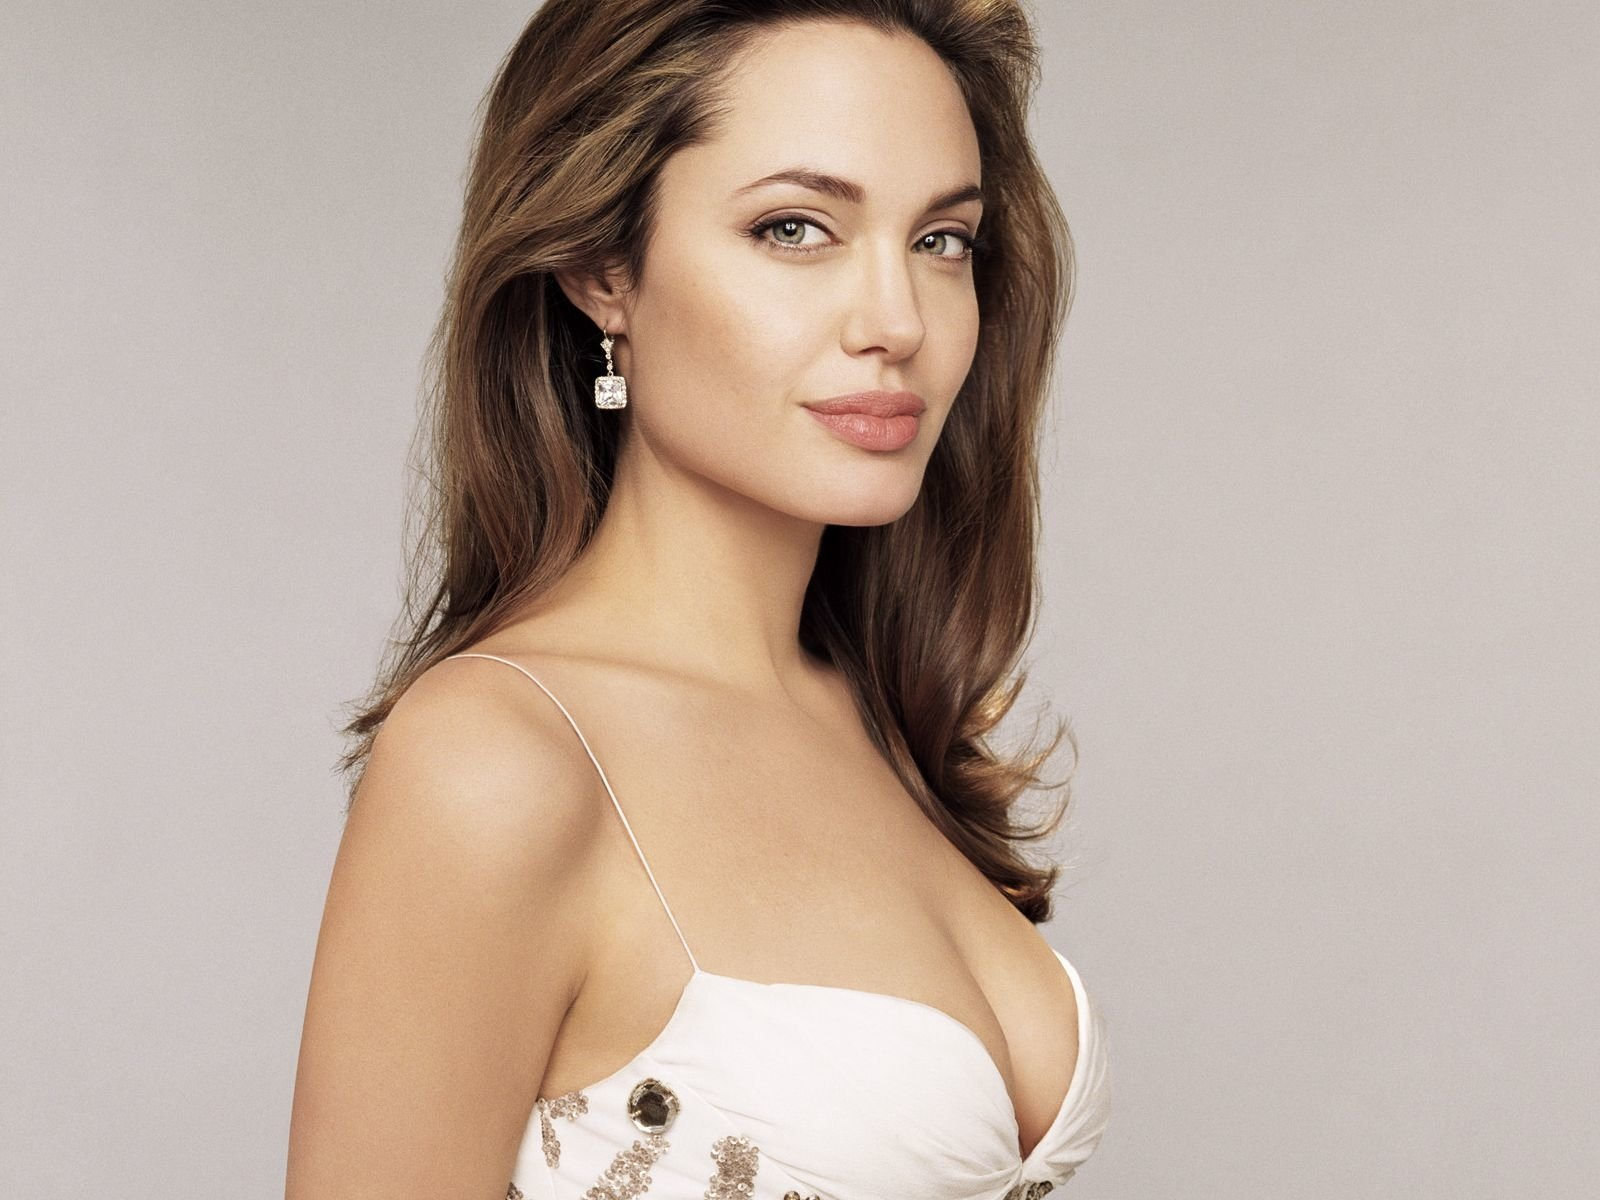 Angelina Jolie Nua angelina jolie wallpaper and background image | 1600x1200